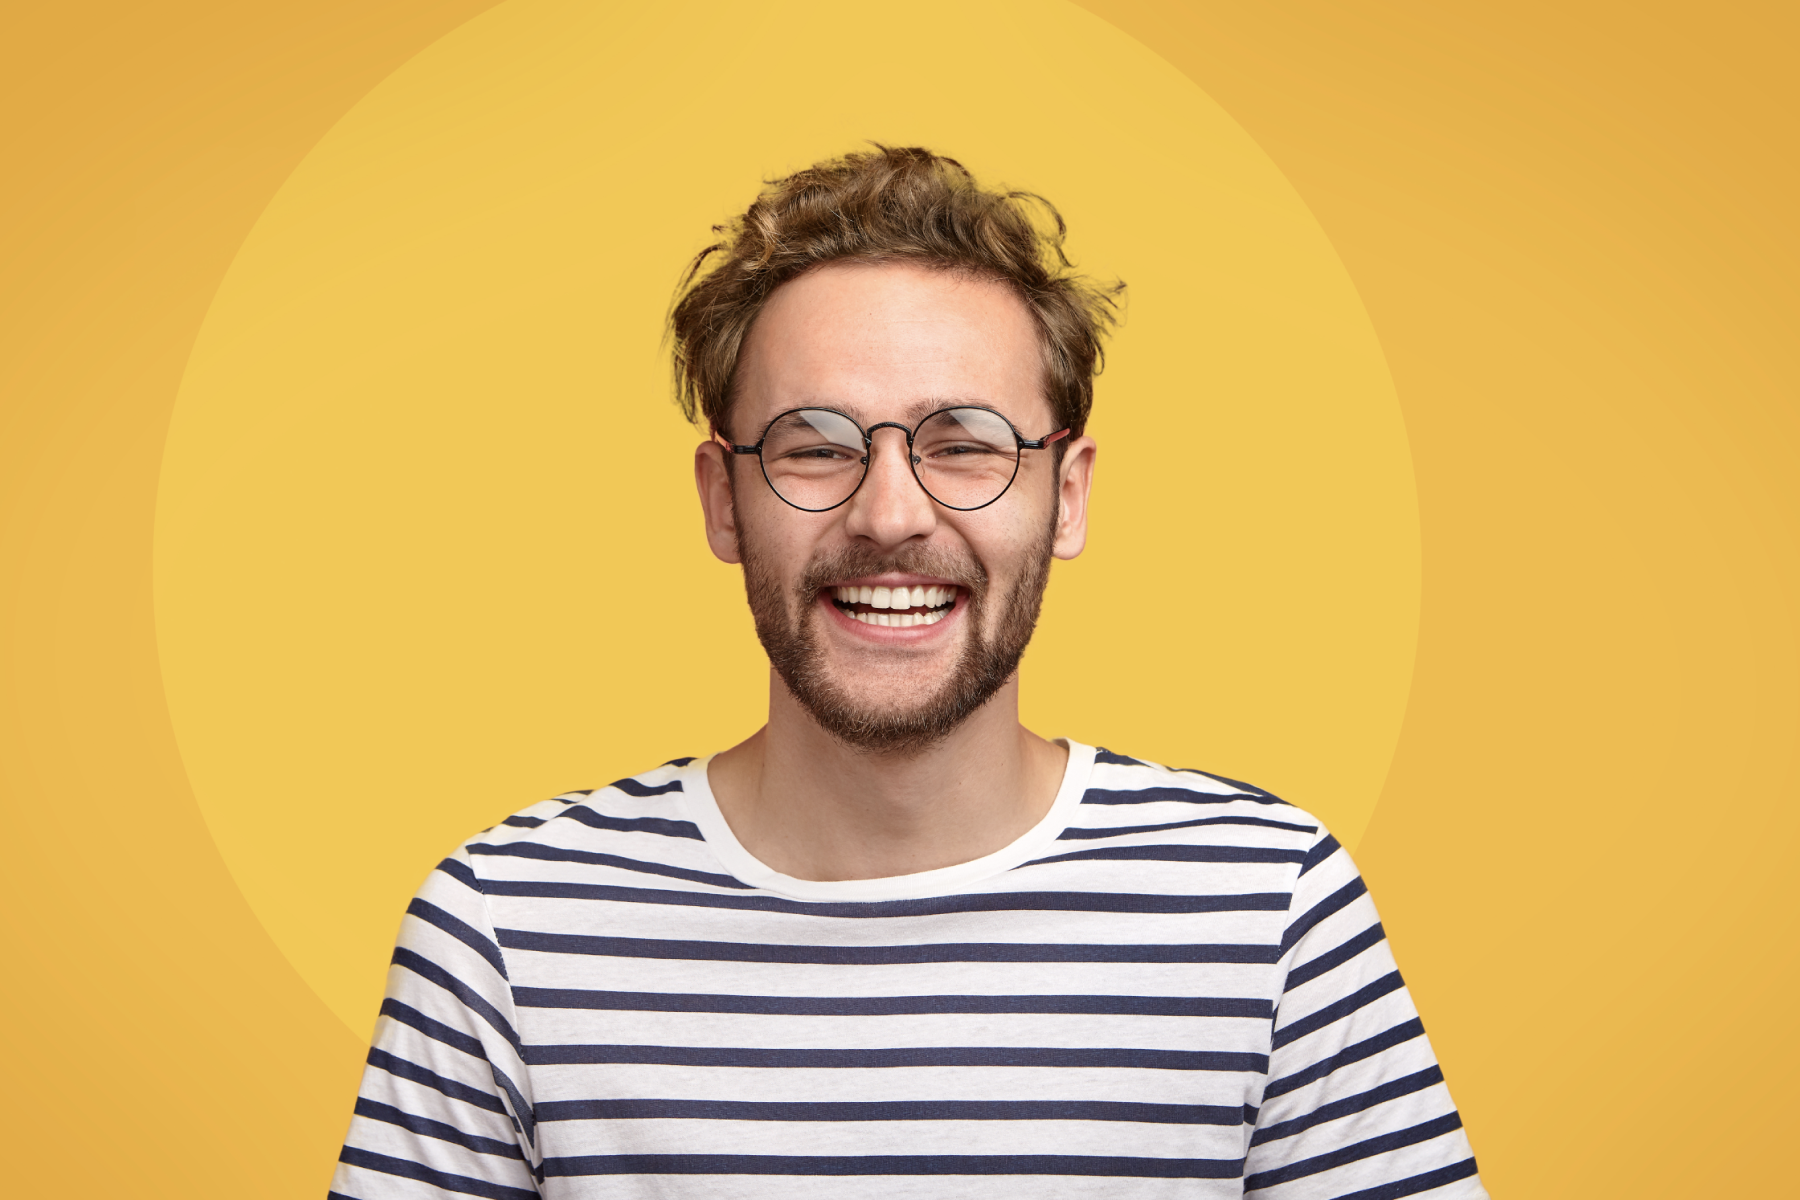 Man with yellow background